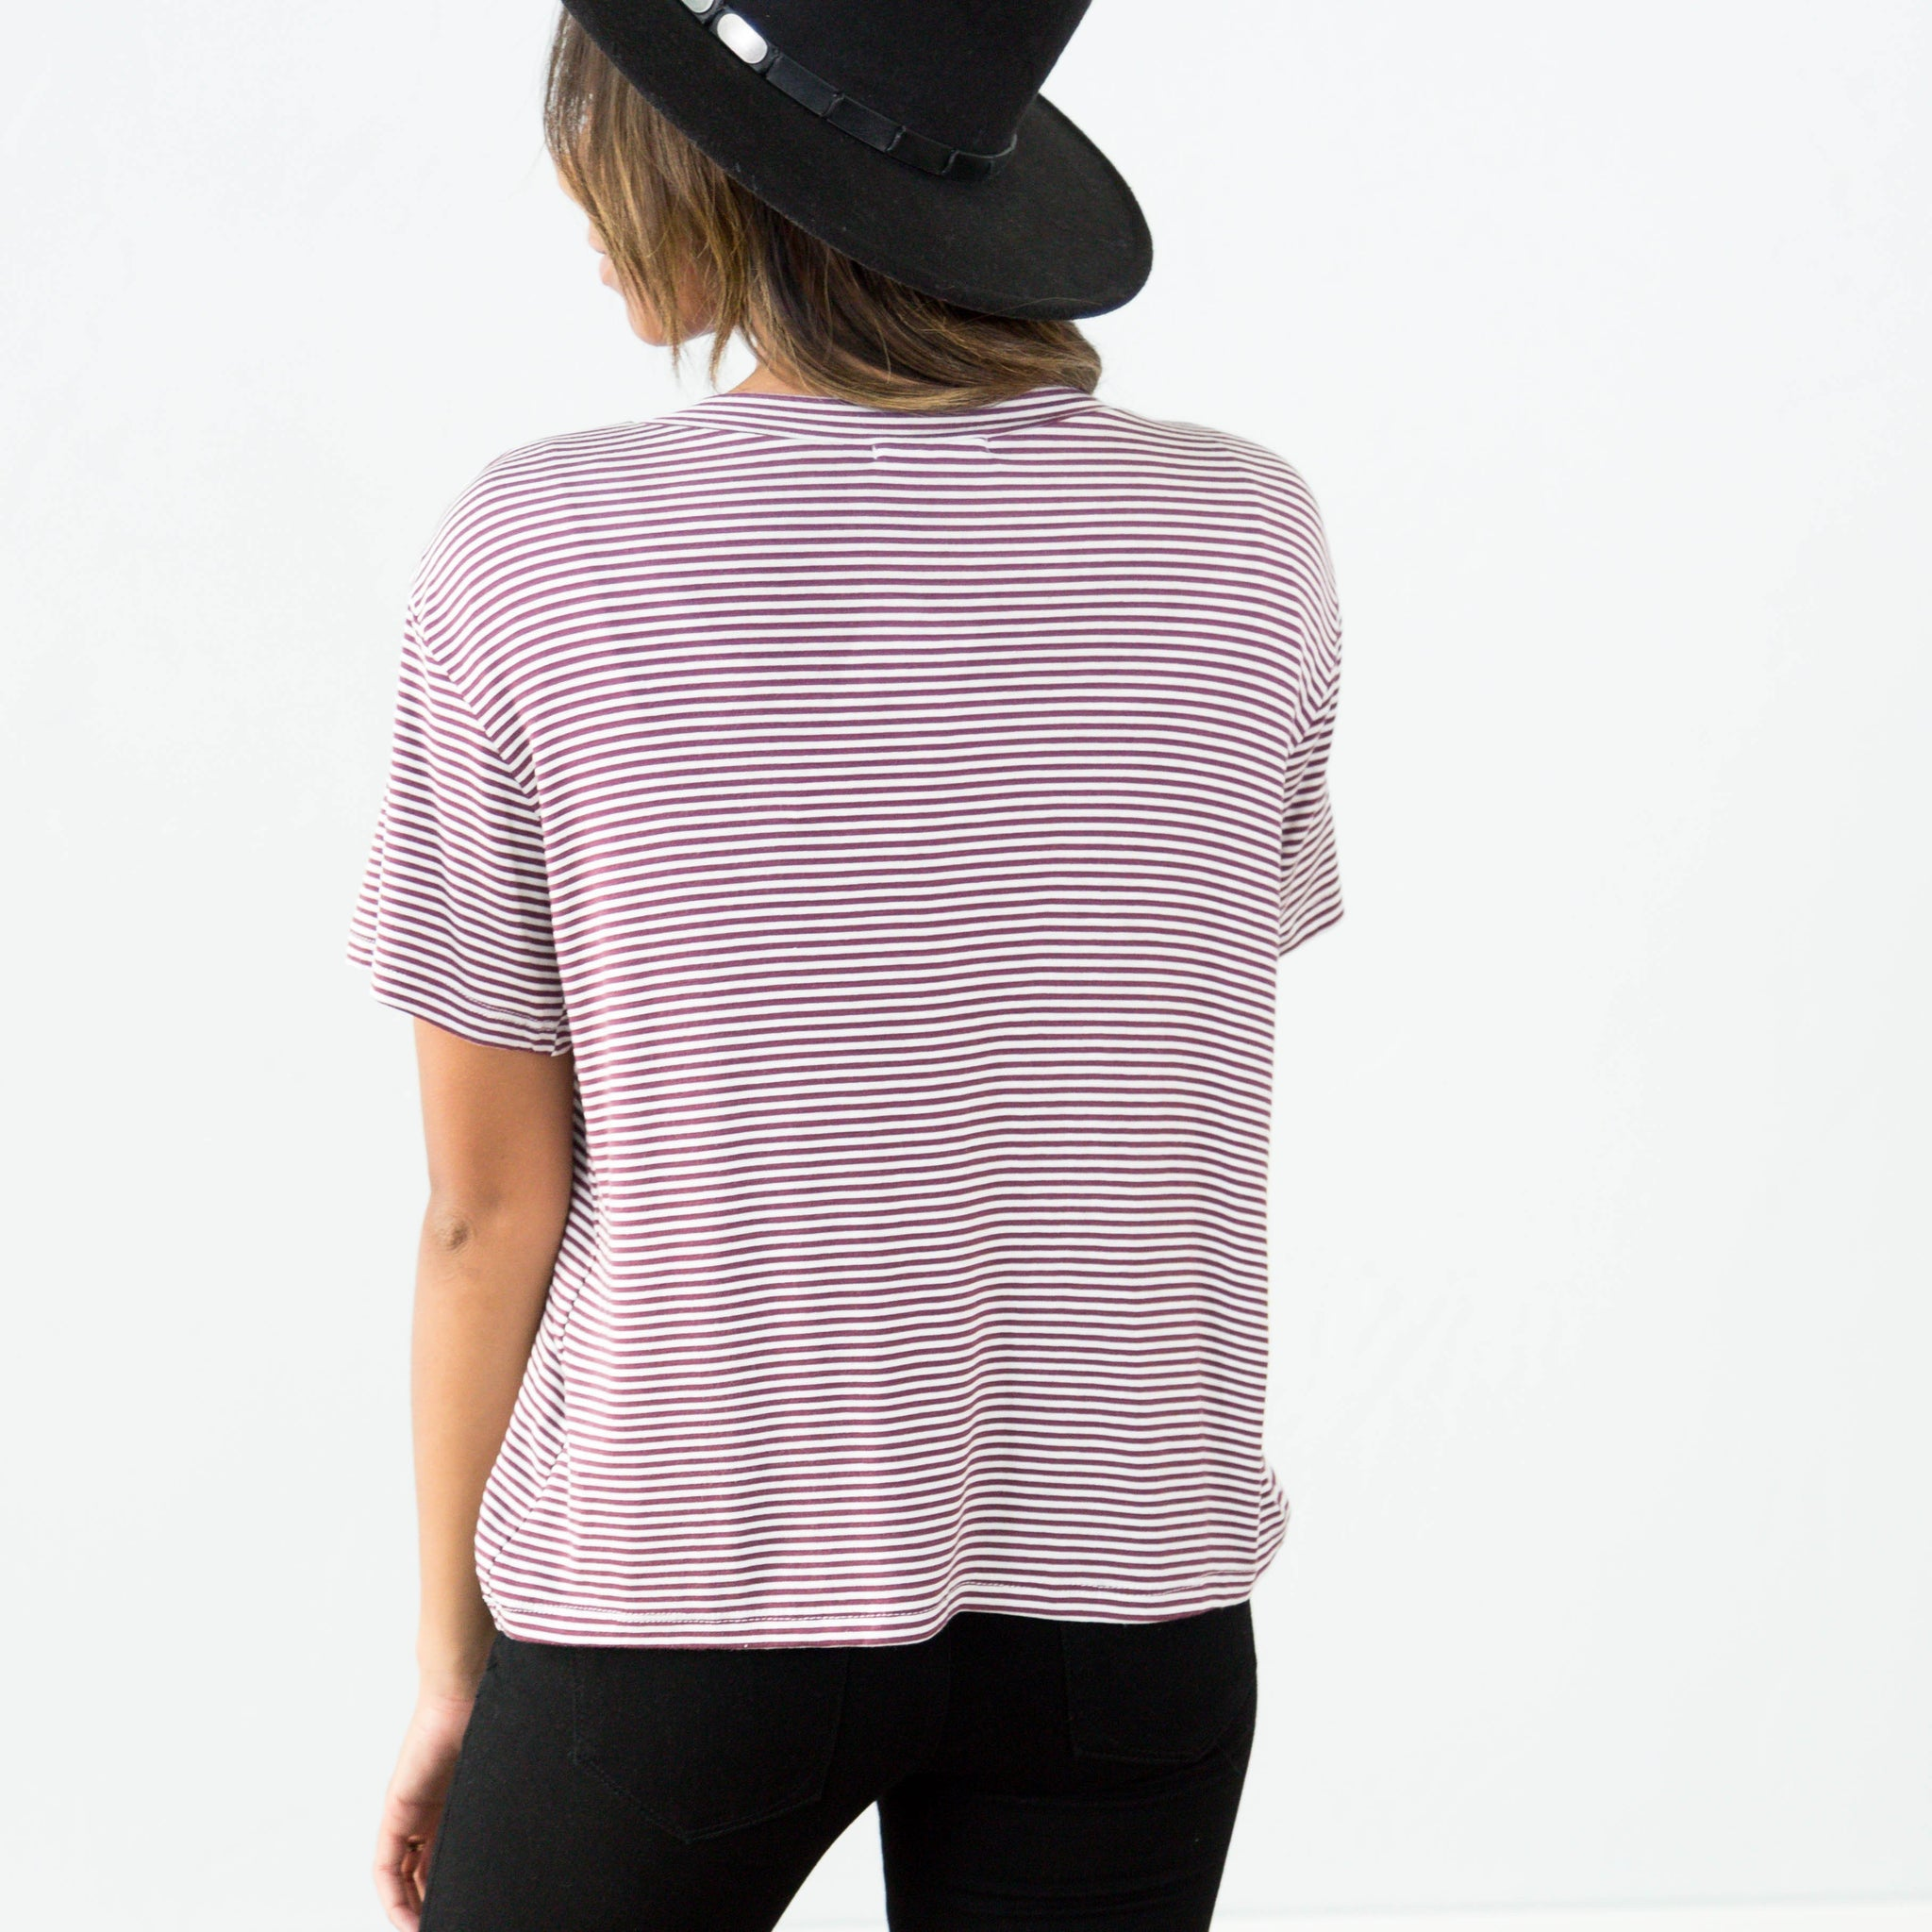 Jainy Stripe Top in Marsala